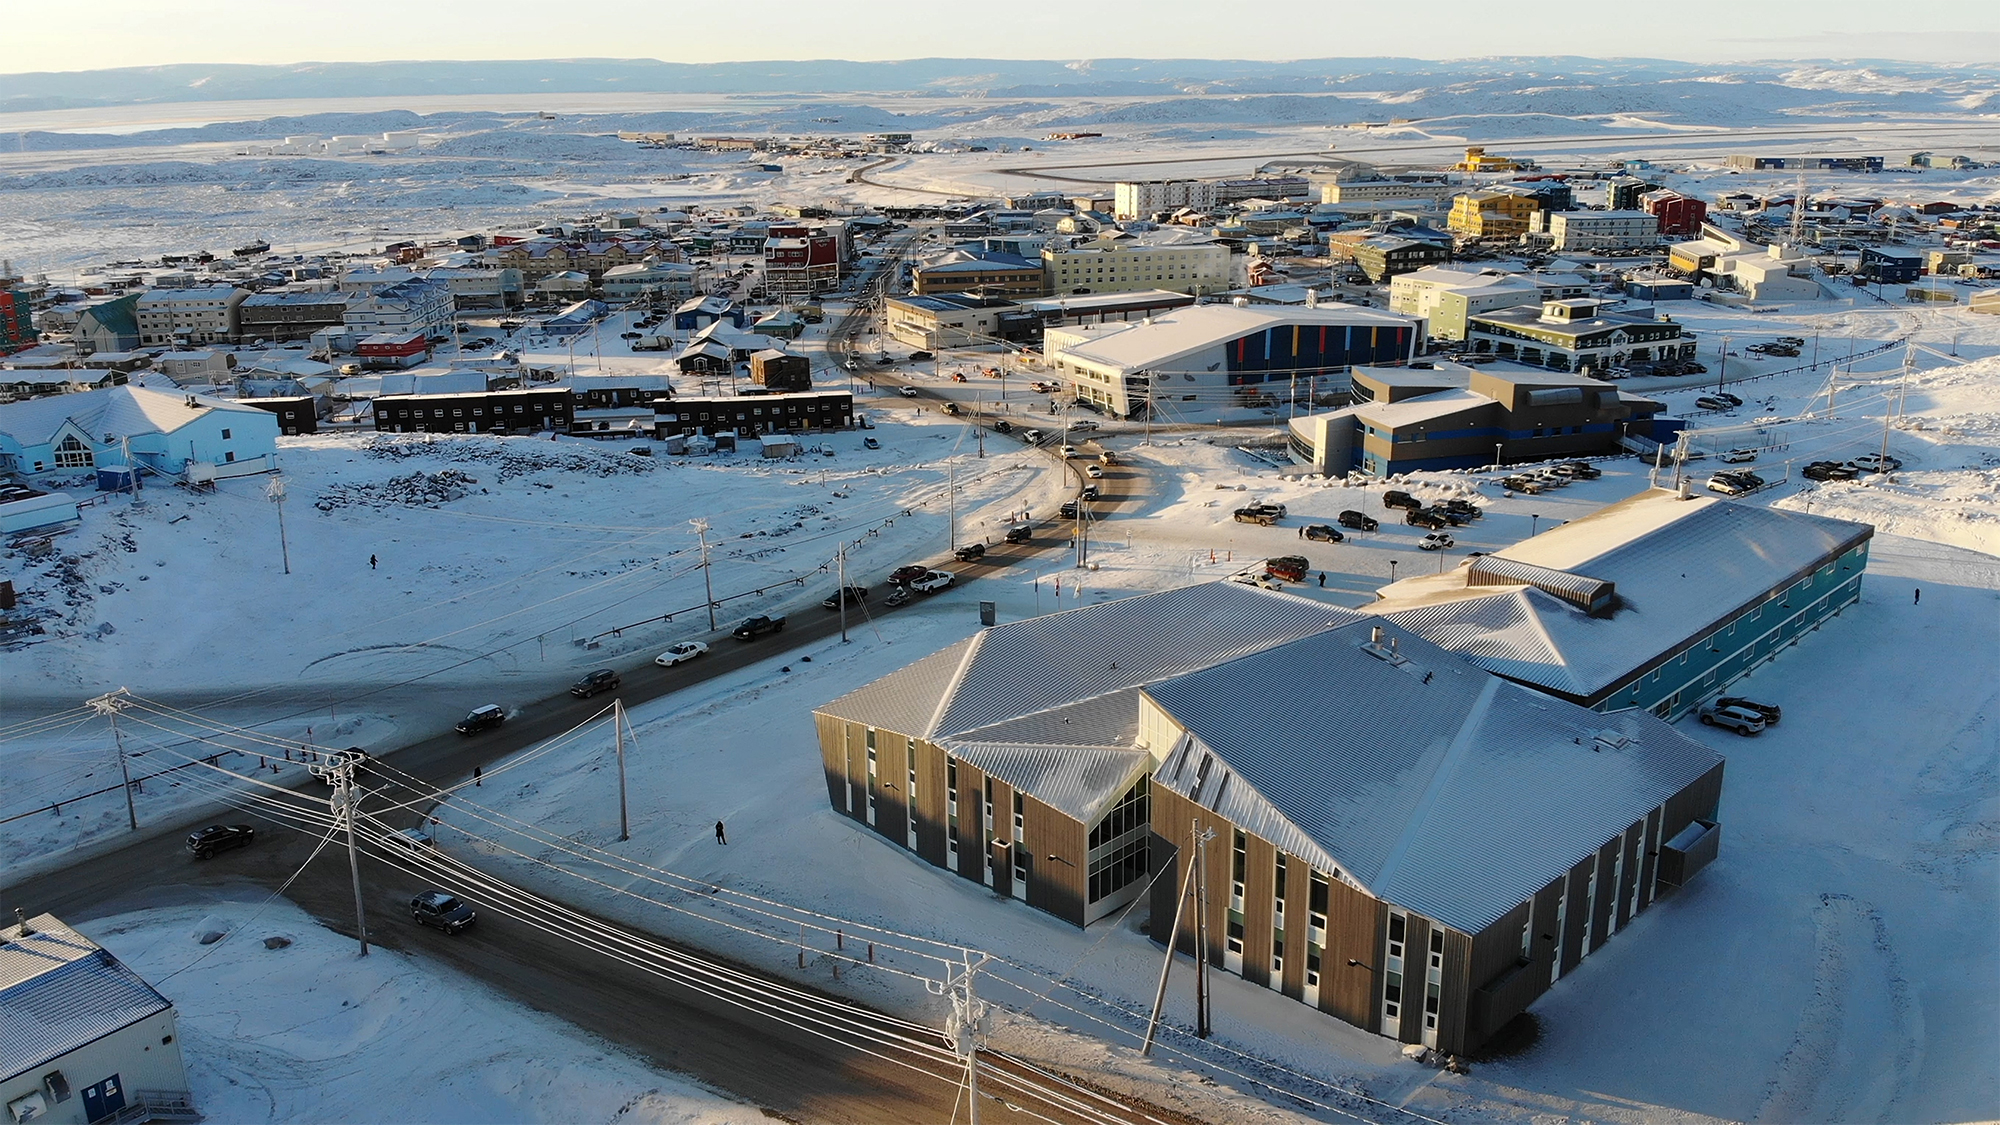 Aerial view of the Nunavut Arctic College Expansion in the context of the City of Iqaluit. Photo by Julie Jira.